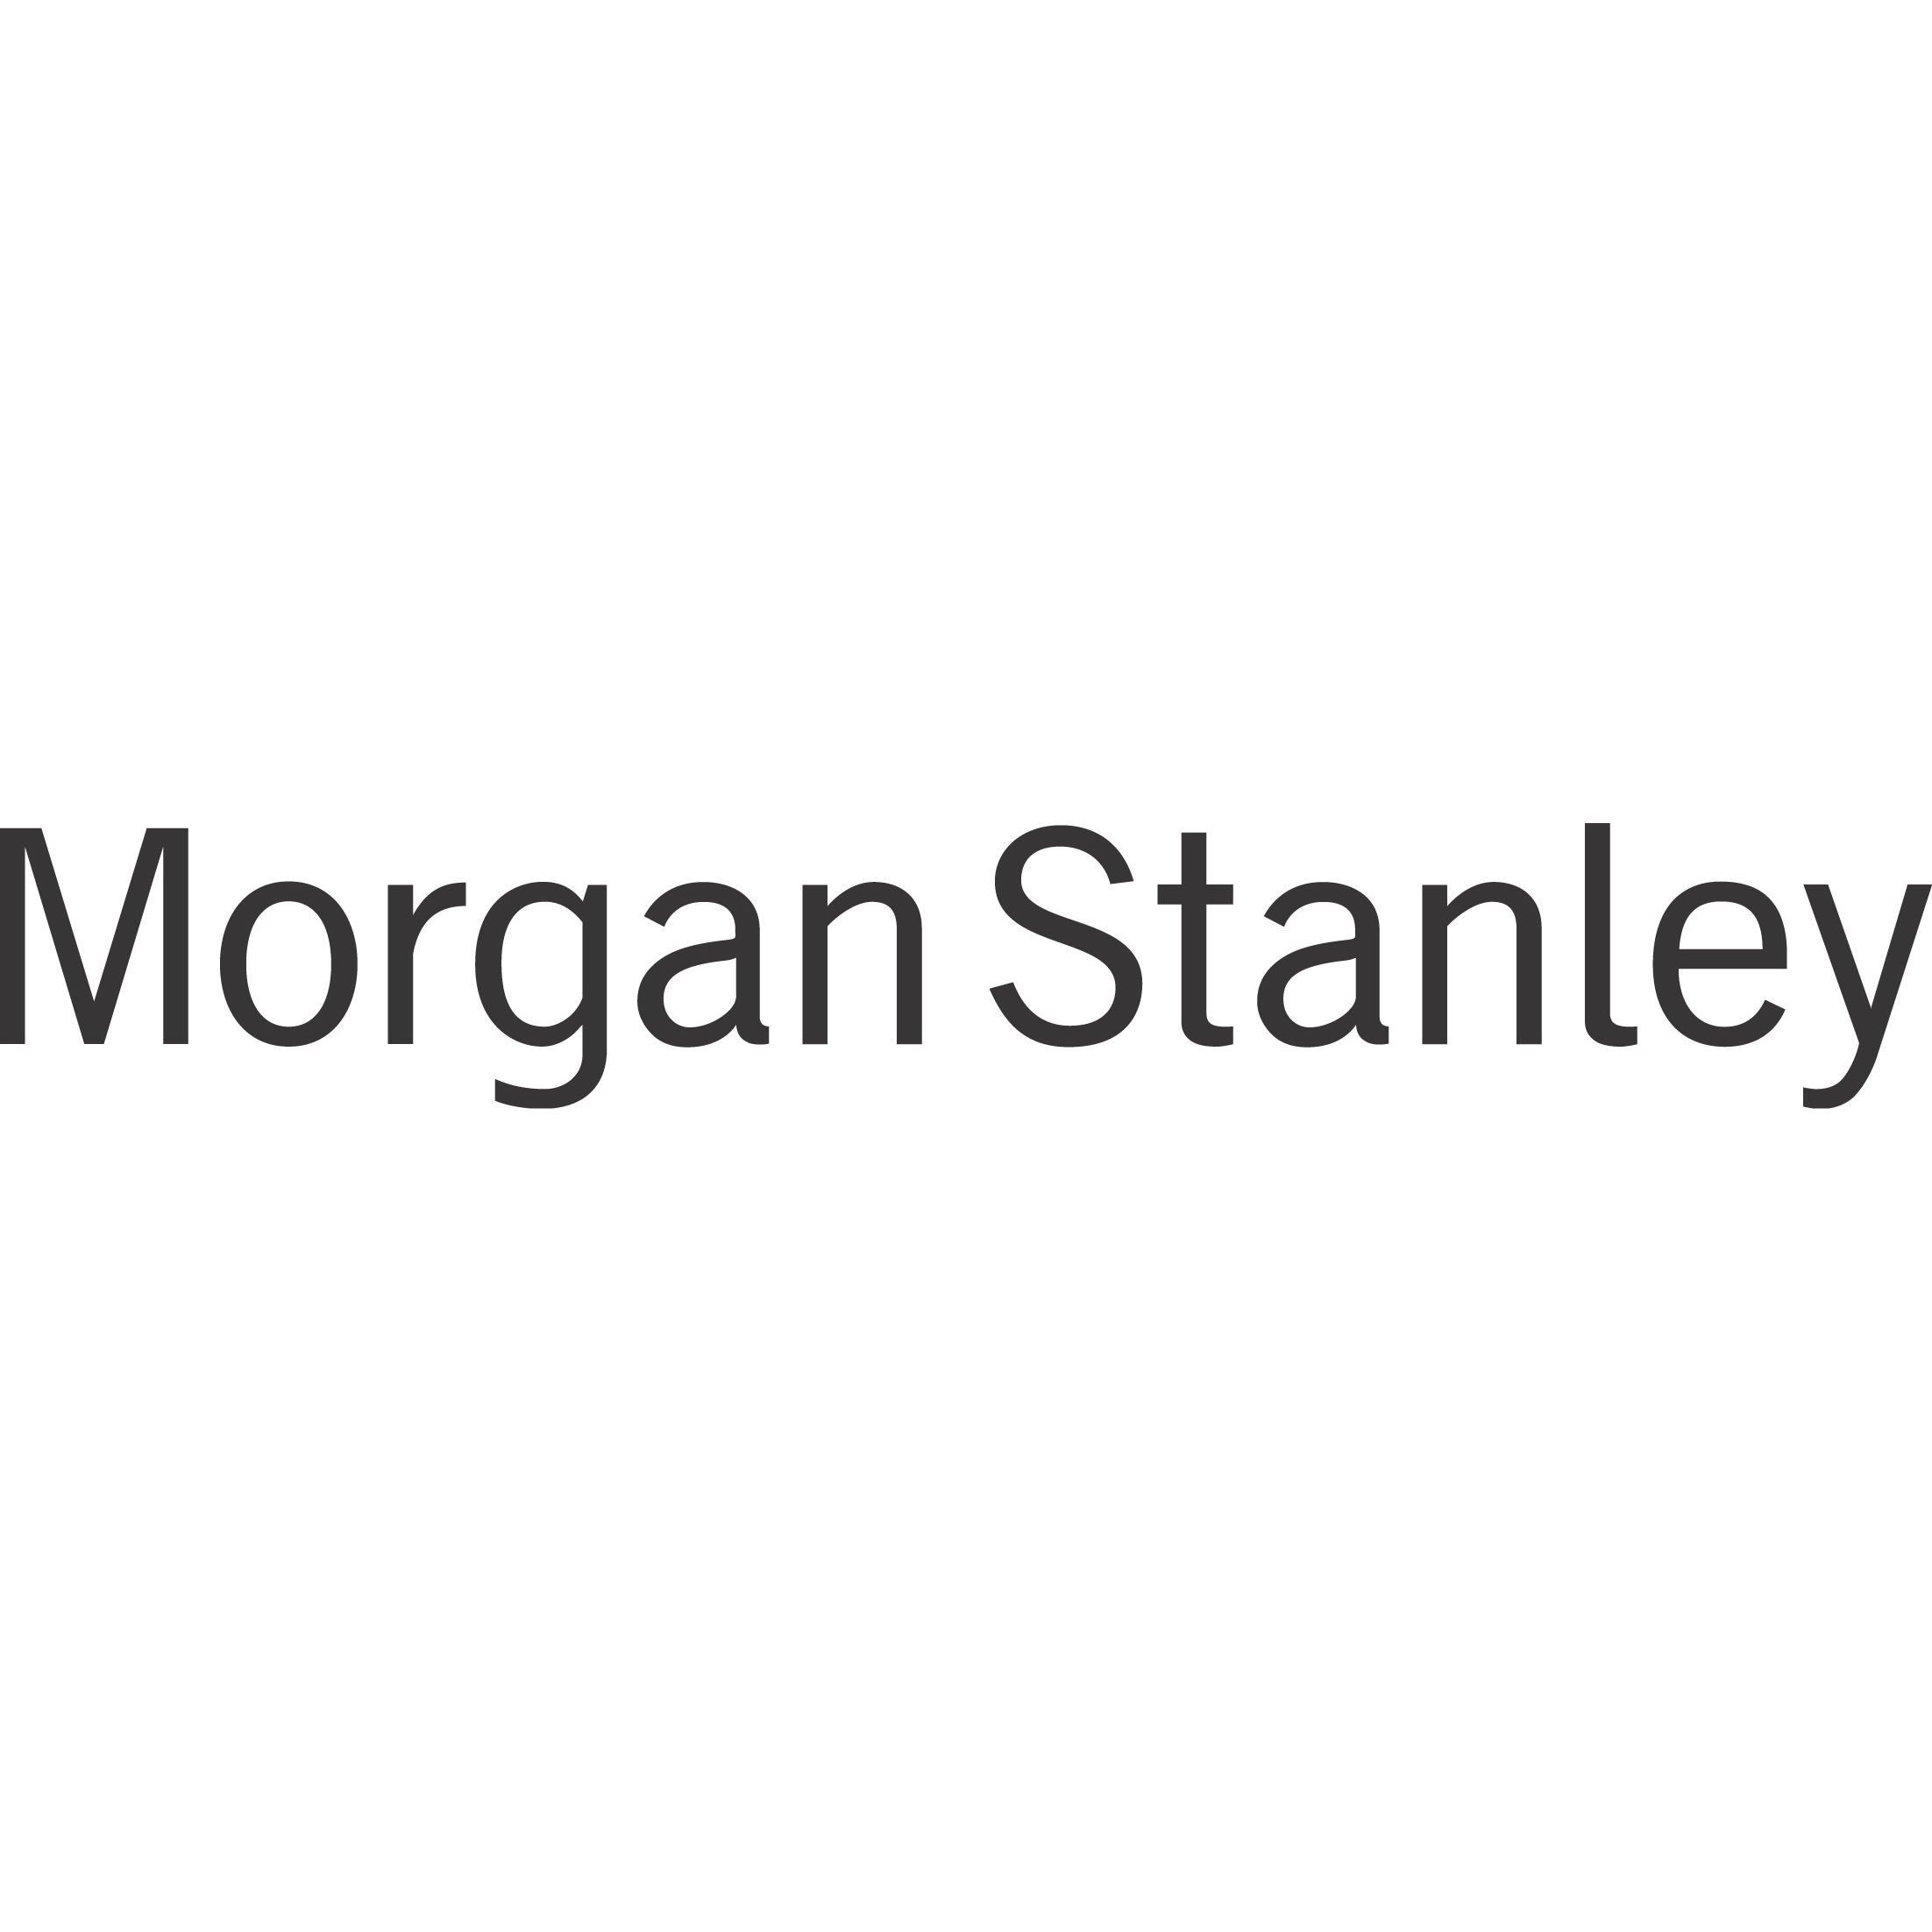 Steven J Cohen - Morgan Stanley | Financial Advisor in Mount Laurel,New Jersey